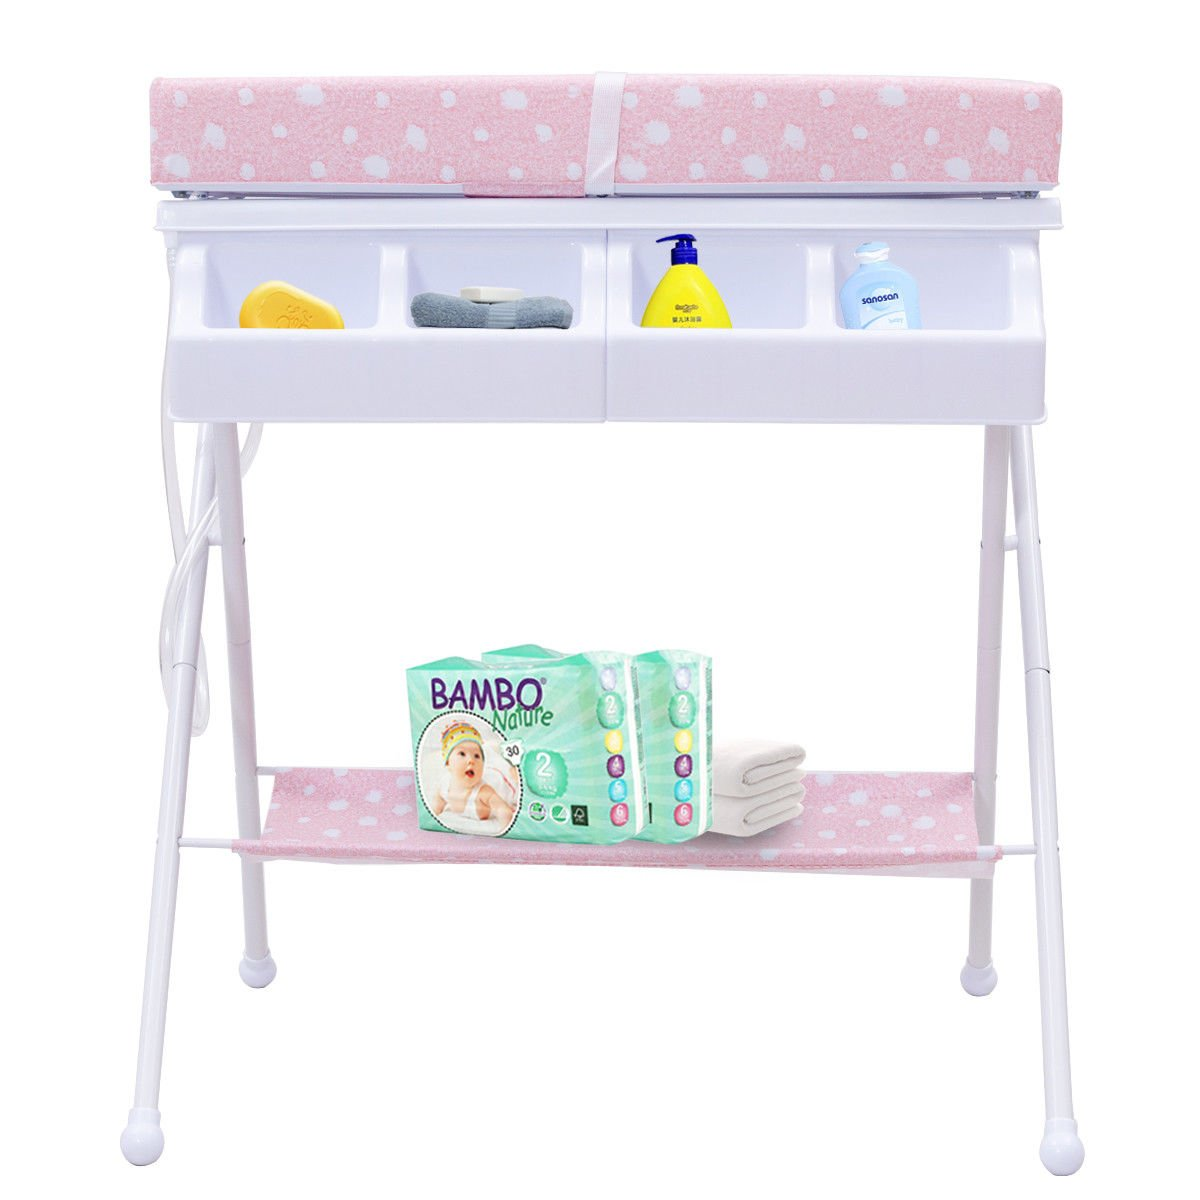 Folding Diaper Station Nursery Organizer for Infant Costzon Baby Changing Table Black